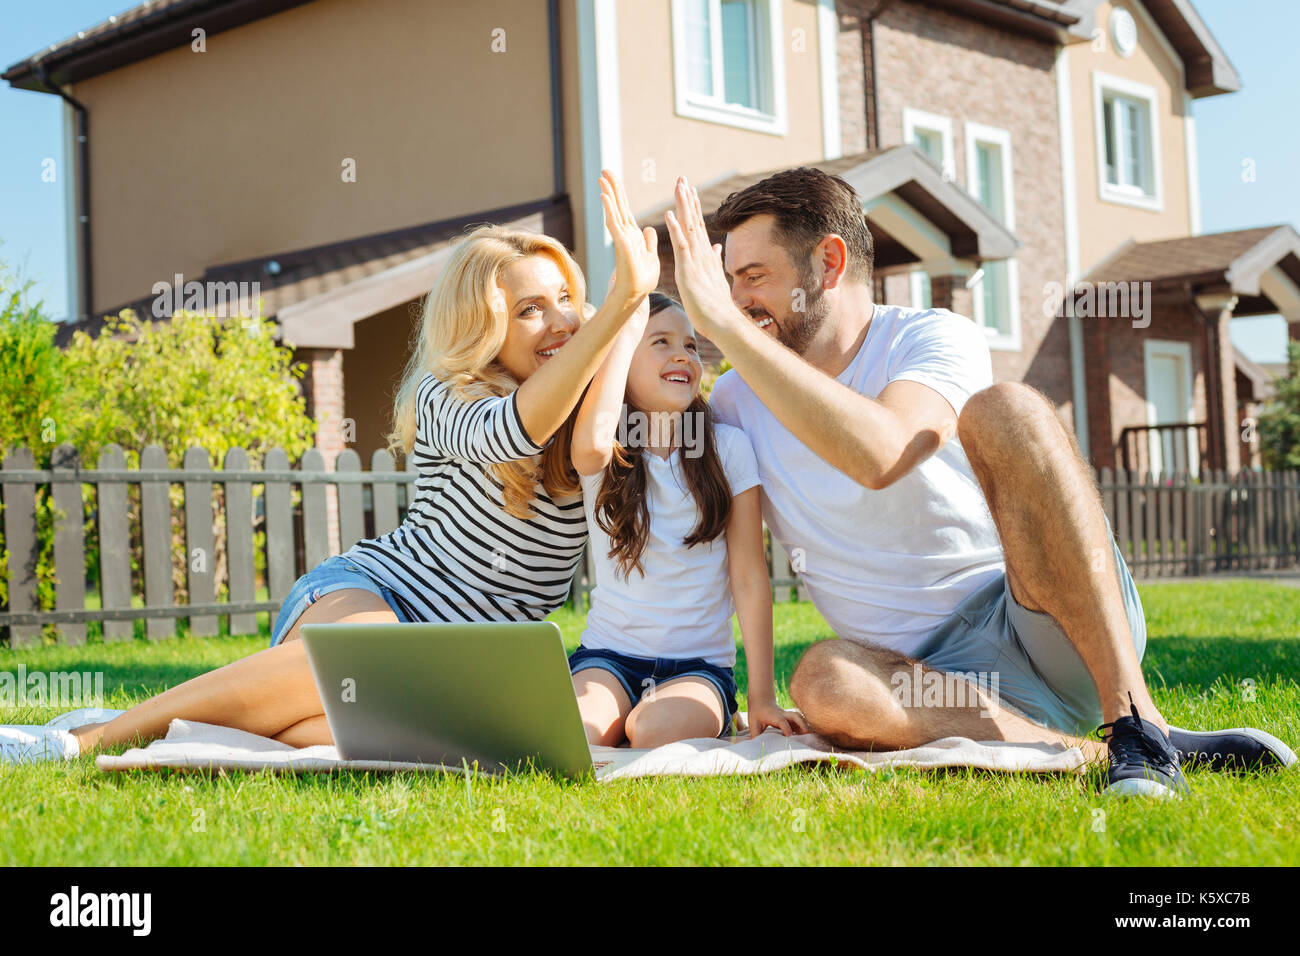 Cheerful young family high-fiving each other on picnic - Stock Image